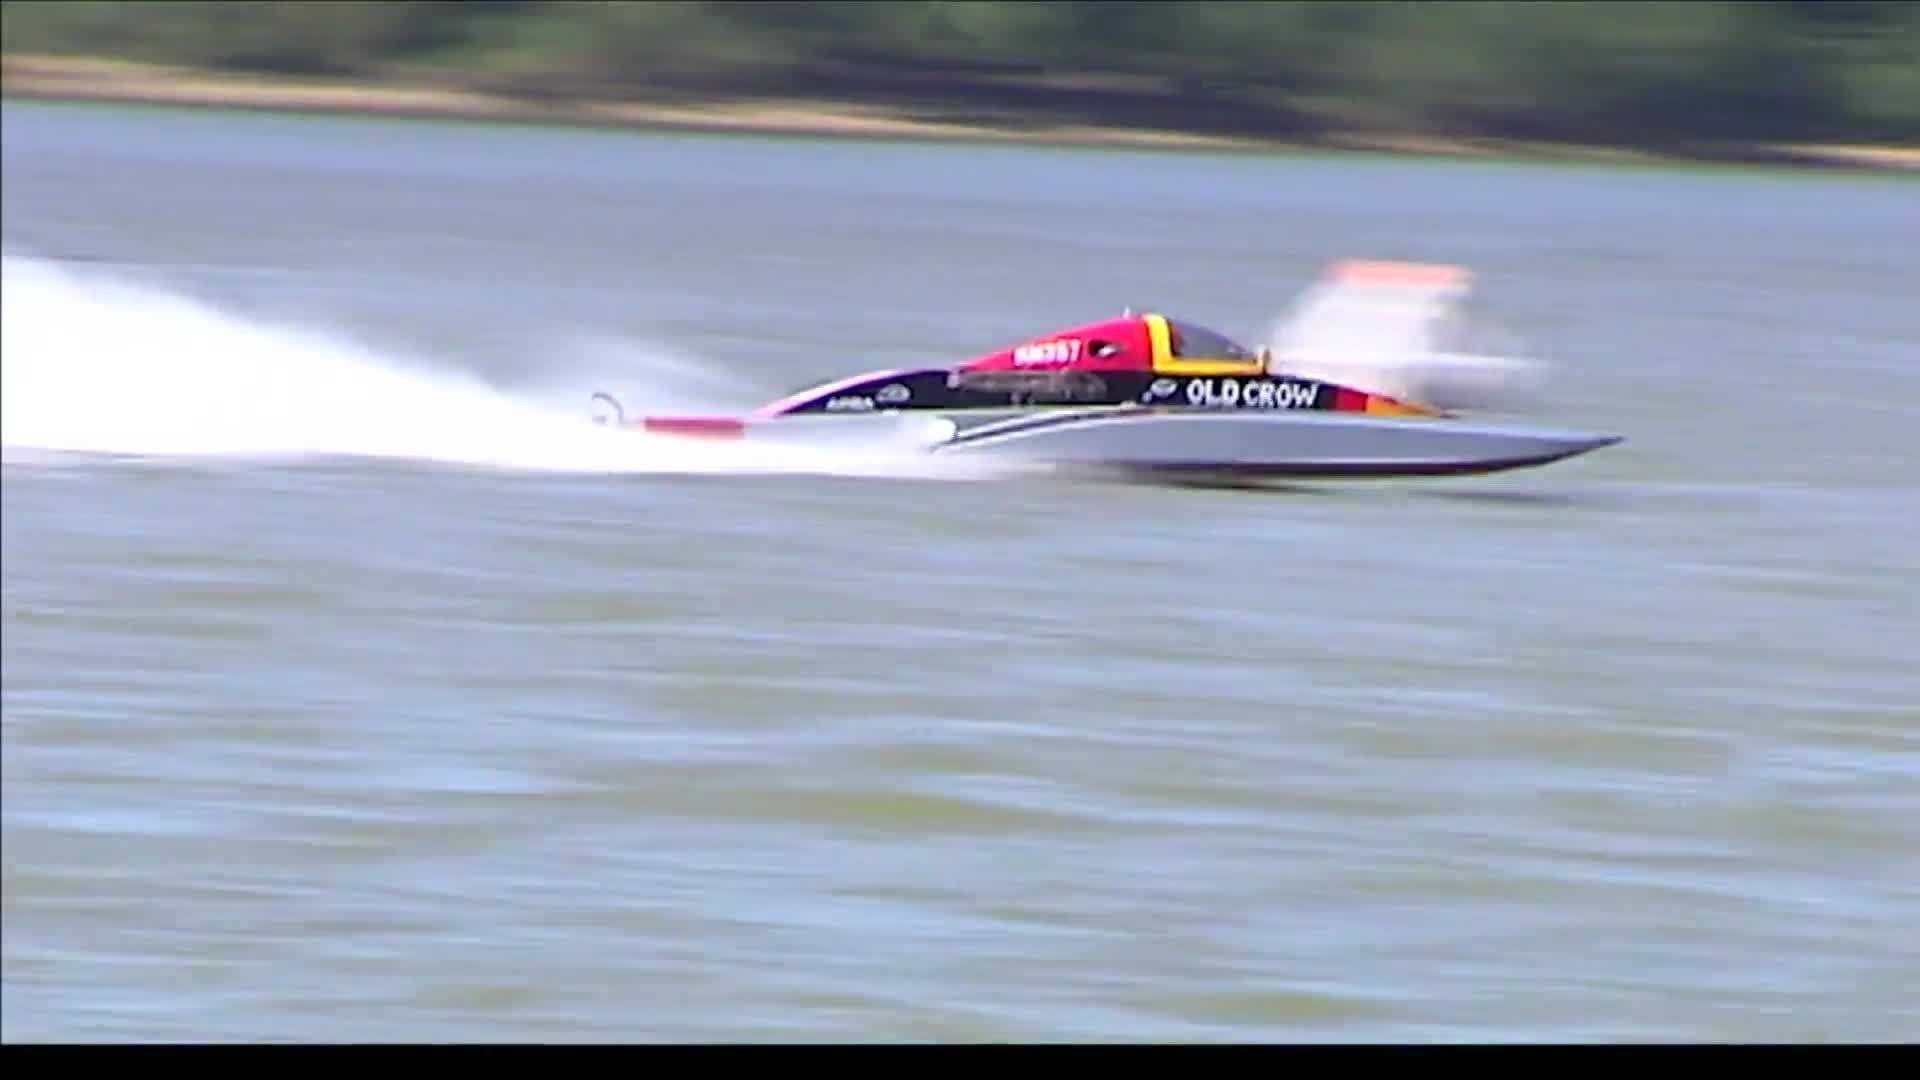 Evansville HydroFest: There will be no hydroplane racing